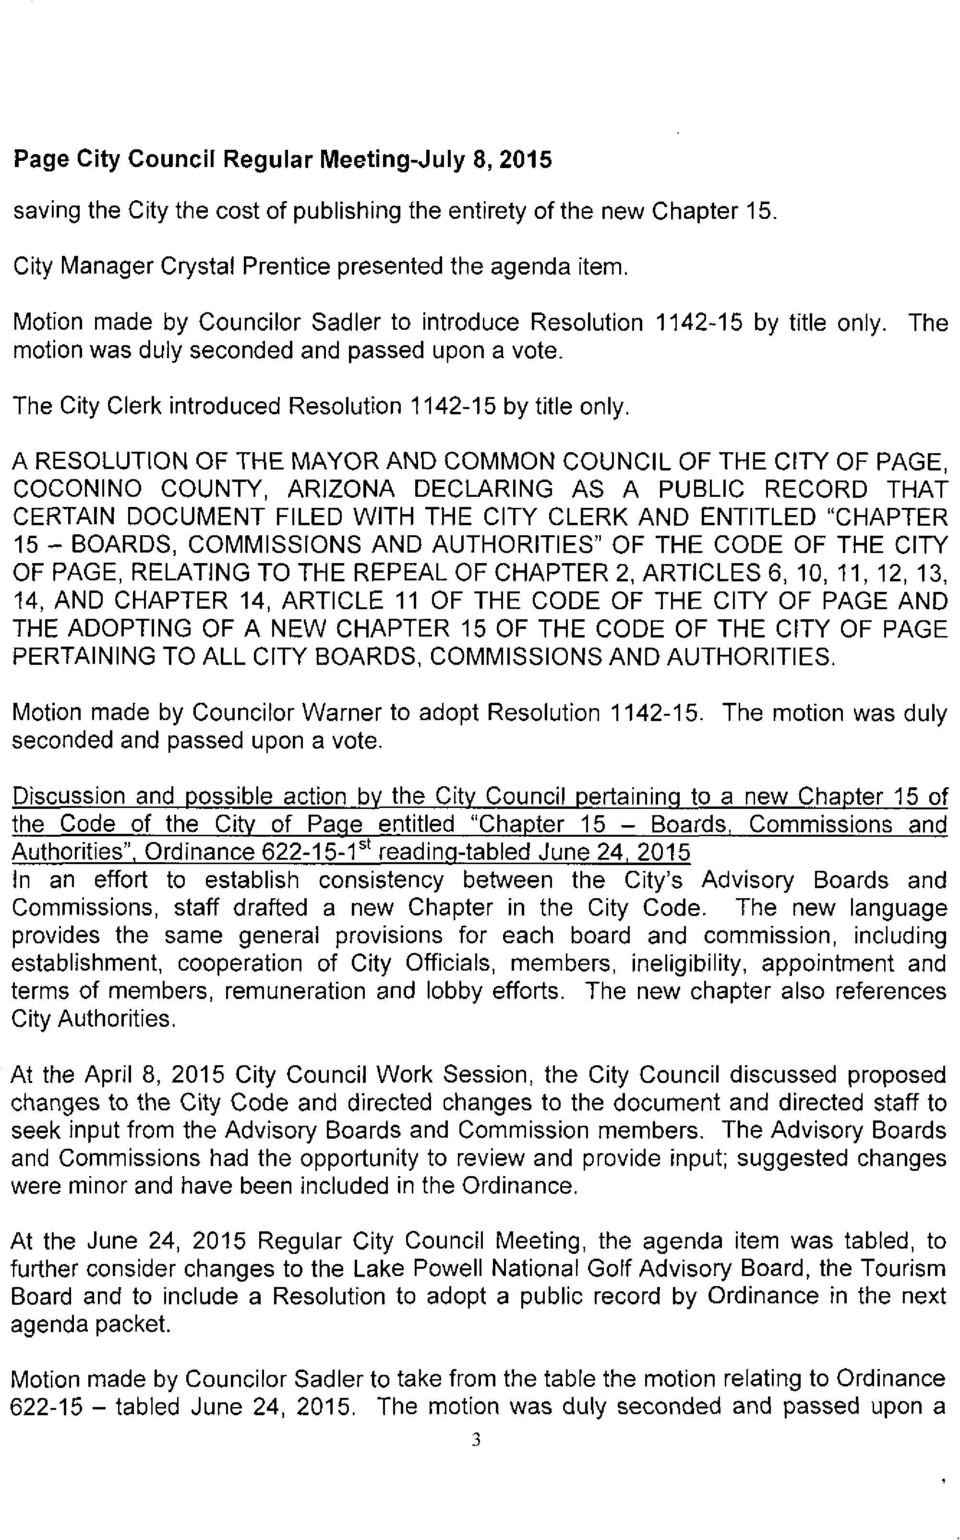 "A RESOLUTION OF THE MAYOR AND COMMON COUNCIL OF THE CITY OF PAGE, COCONINO COUNTY, ARIZONA DECLARING AS A PUBLIC RECORD THAT CERTAIN DOCUMENT FILED WITH THE CITY CLERK AND ENTITLED "" CHAPTER 15"